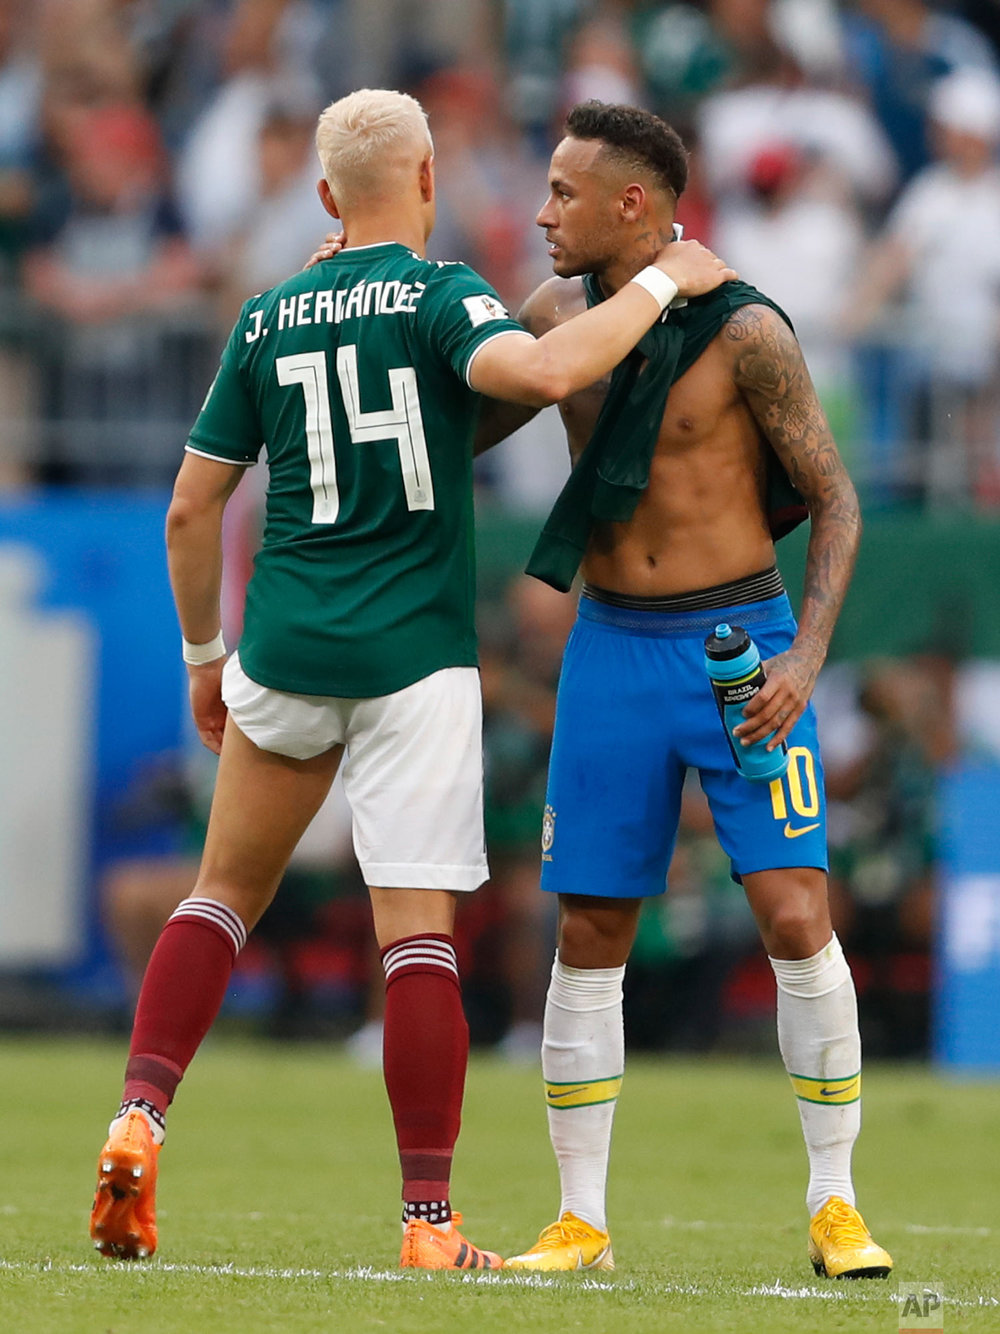 Mexico's Javier Hernandez (14) embraces Brazil's Neymar after their round of 16 match at the 2018 soccer World Cup in the Samara Arena, in Samara, Russia, Monday, July 2, 2018. Brazil won 2-0. (AP Photo/Eduardo Verdugo)